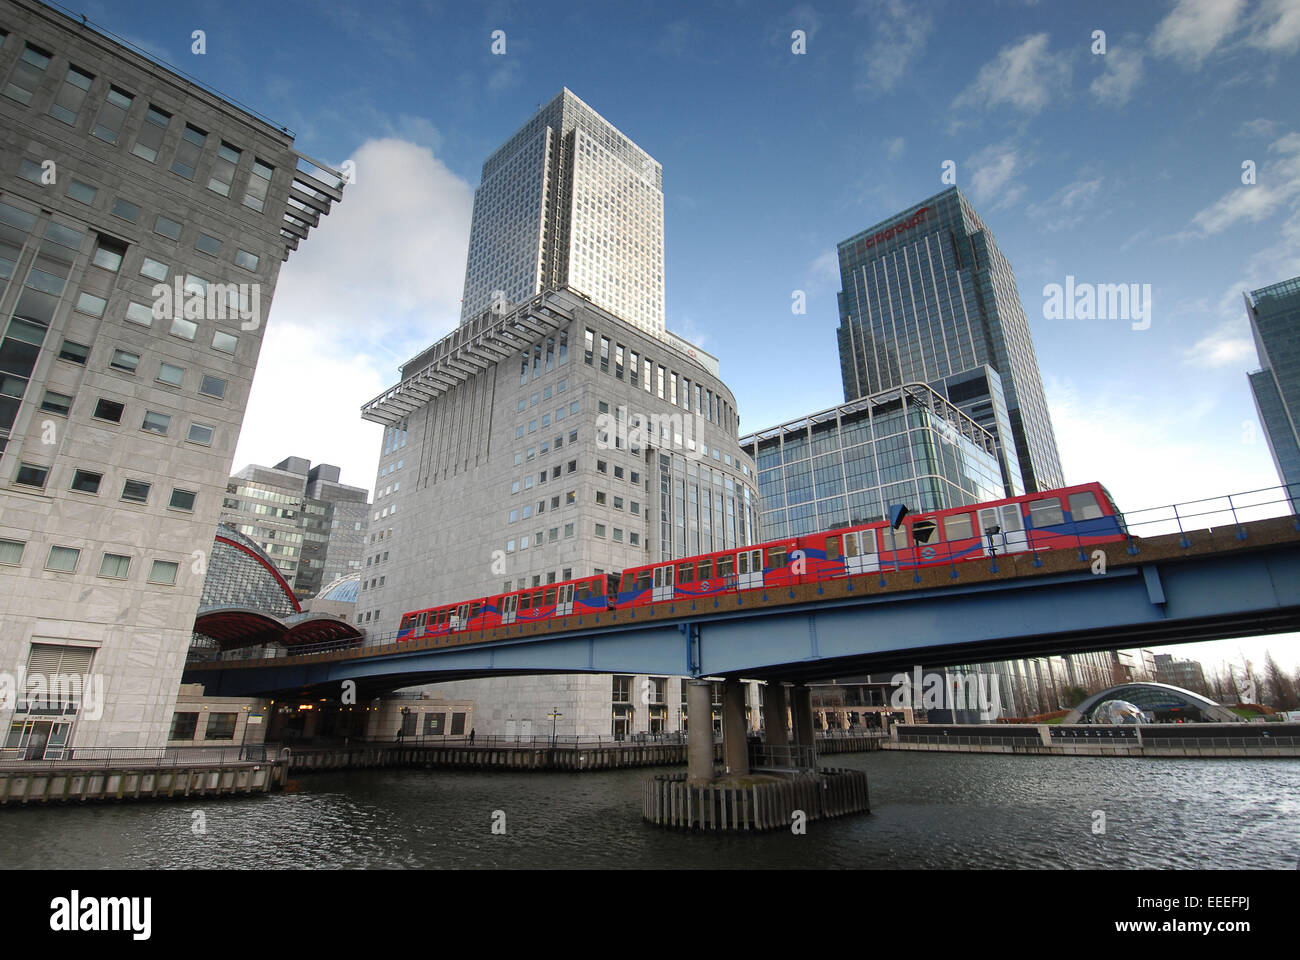 DLR train on railway bridge in Docklands - Stock Image